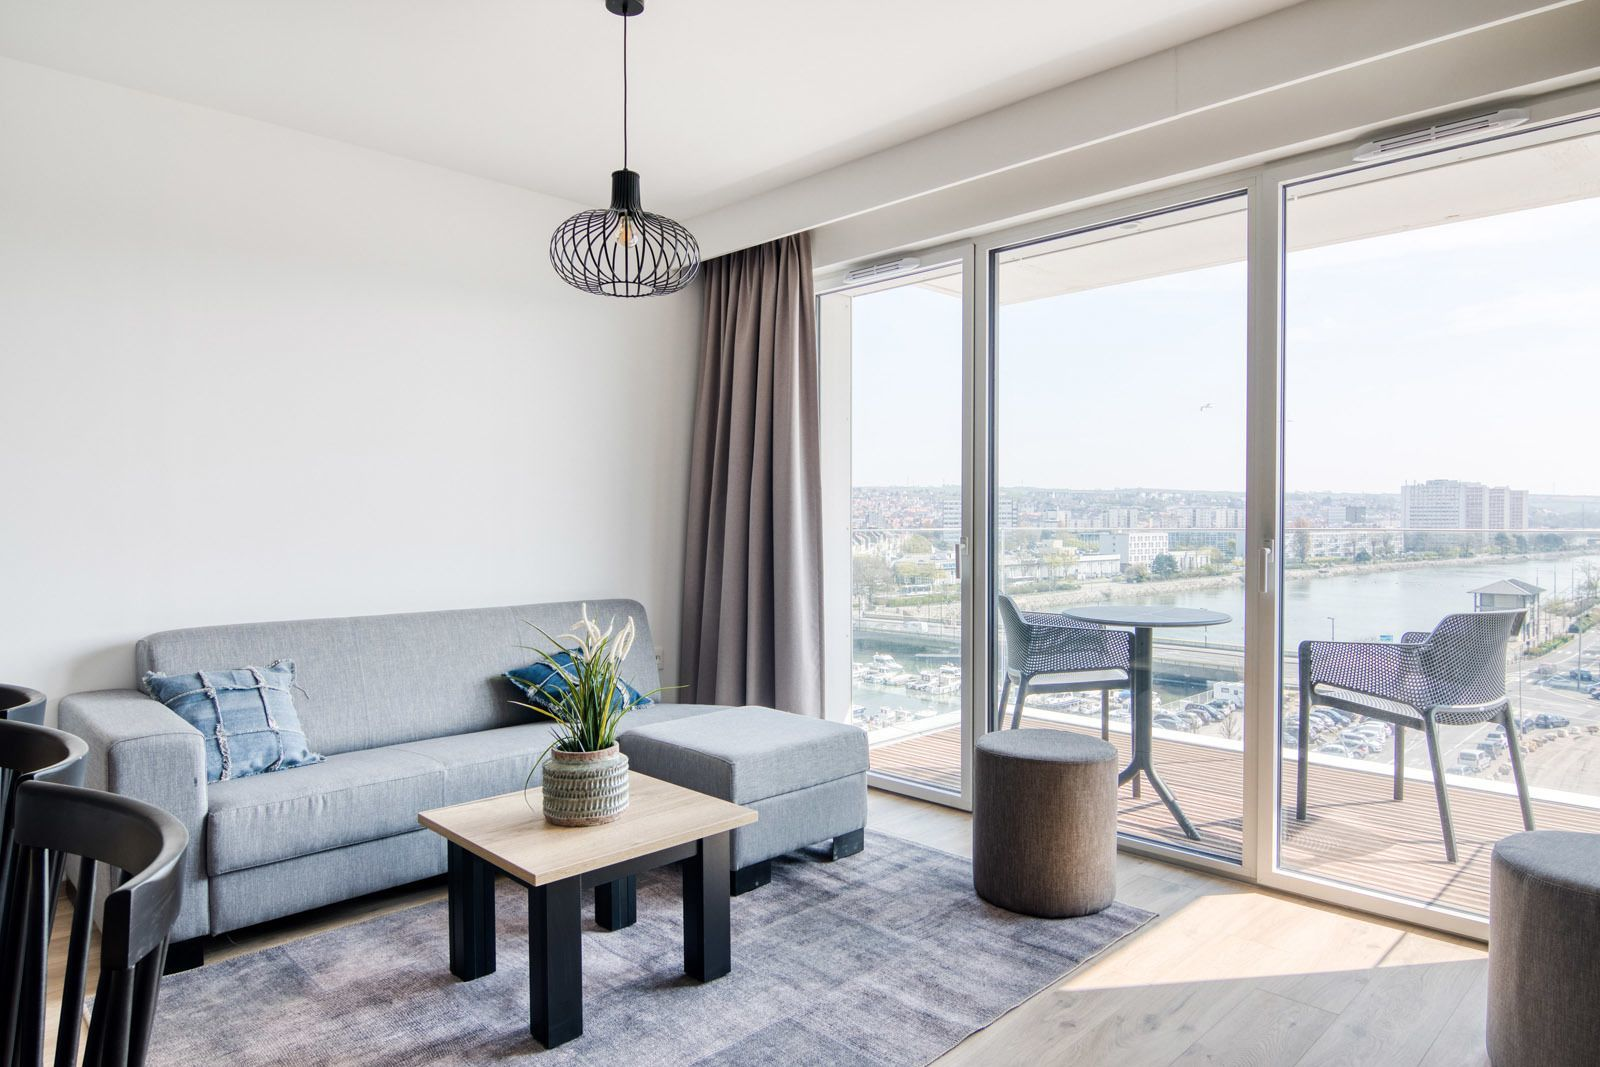 Deluxe suite for 6 people with 3 bedrooms and balcony